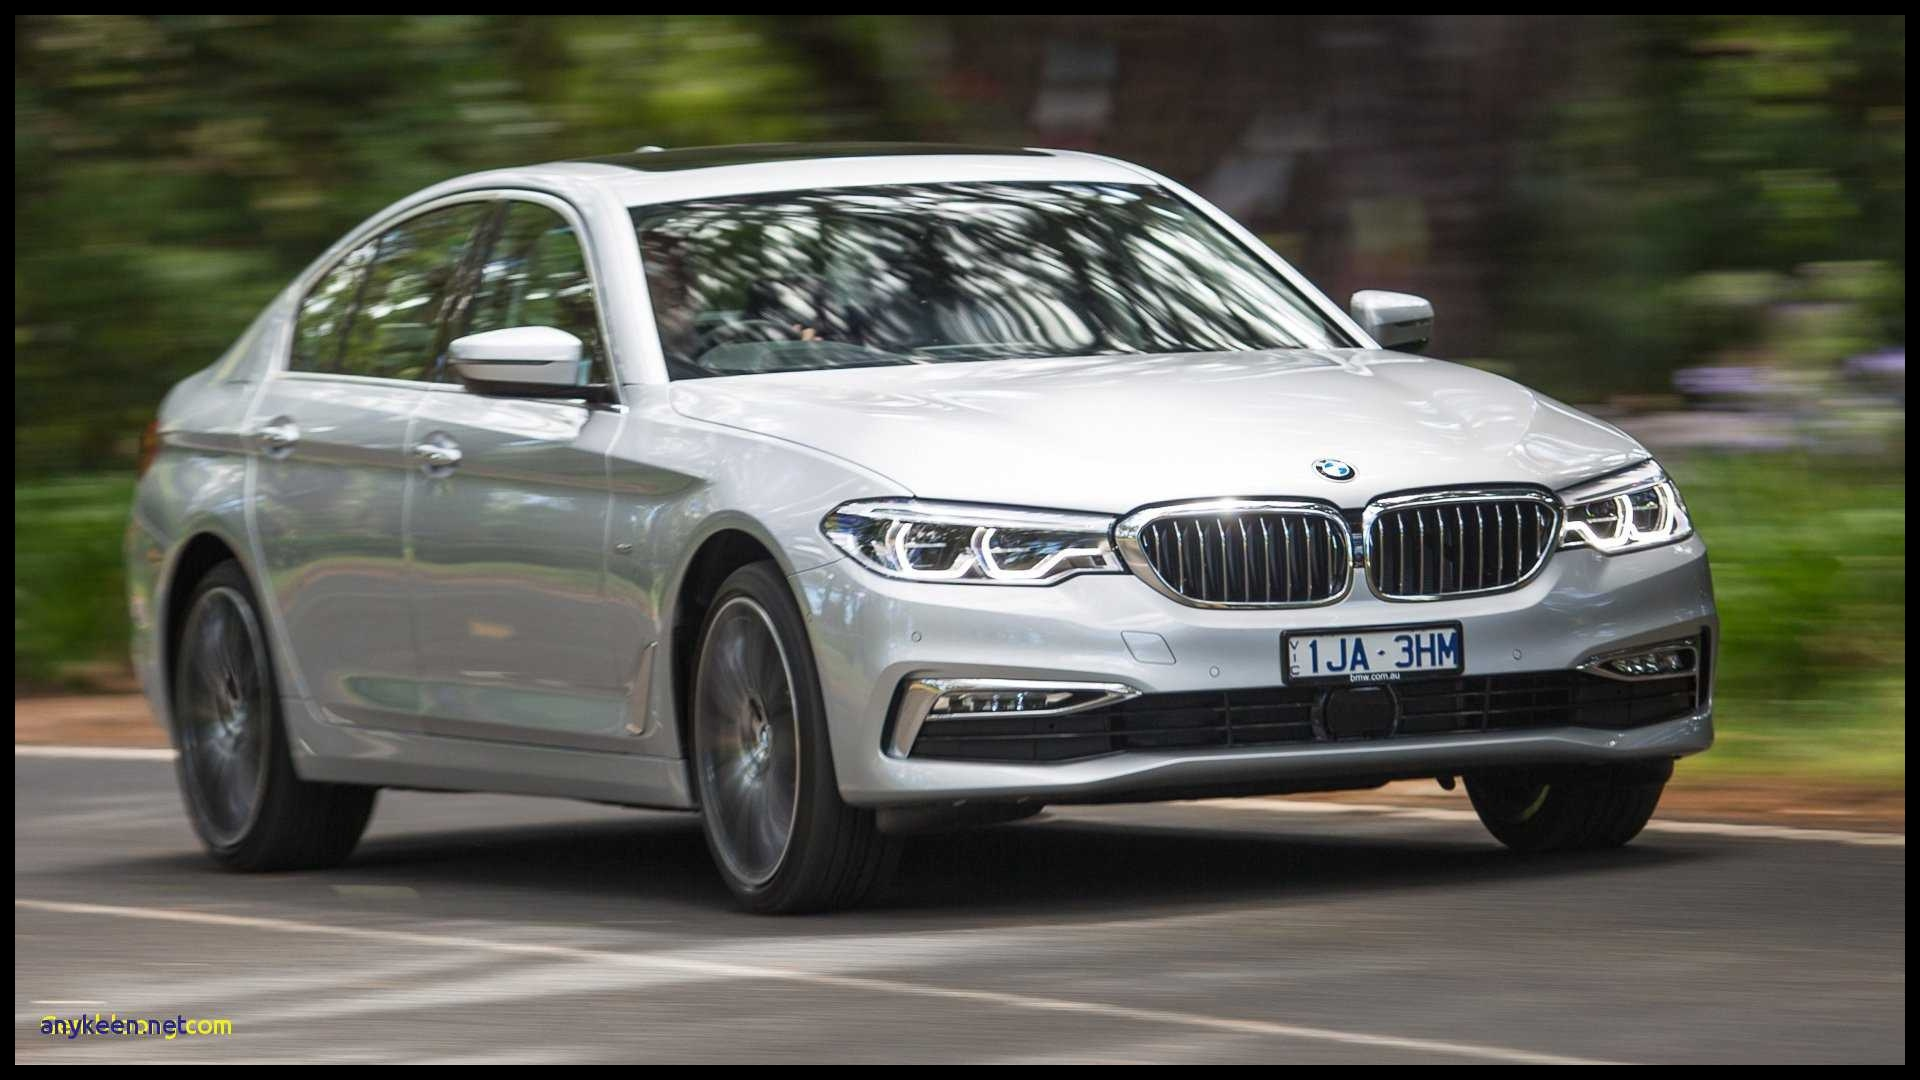 Bmw 5 2018 Review 2019 Bmw 5 Series Bmw 5 Series µ ´ ° ½ 2018